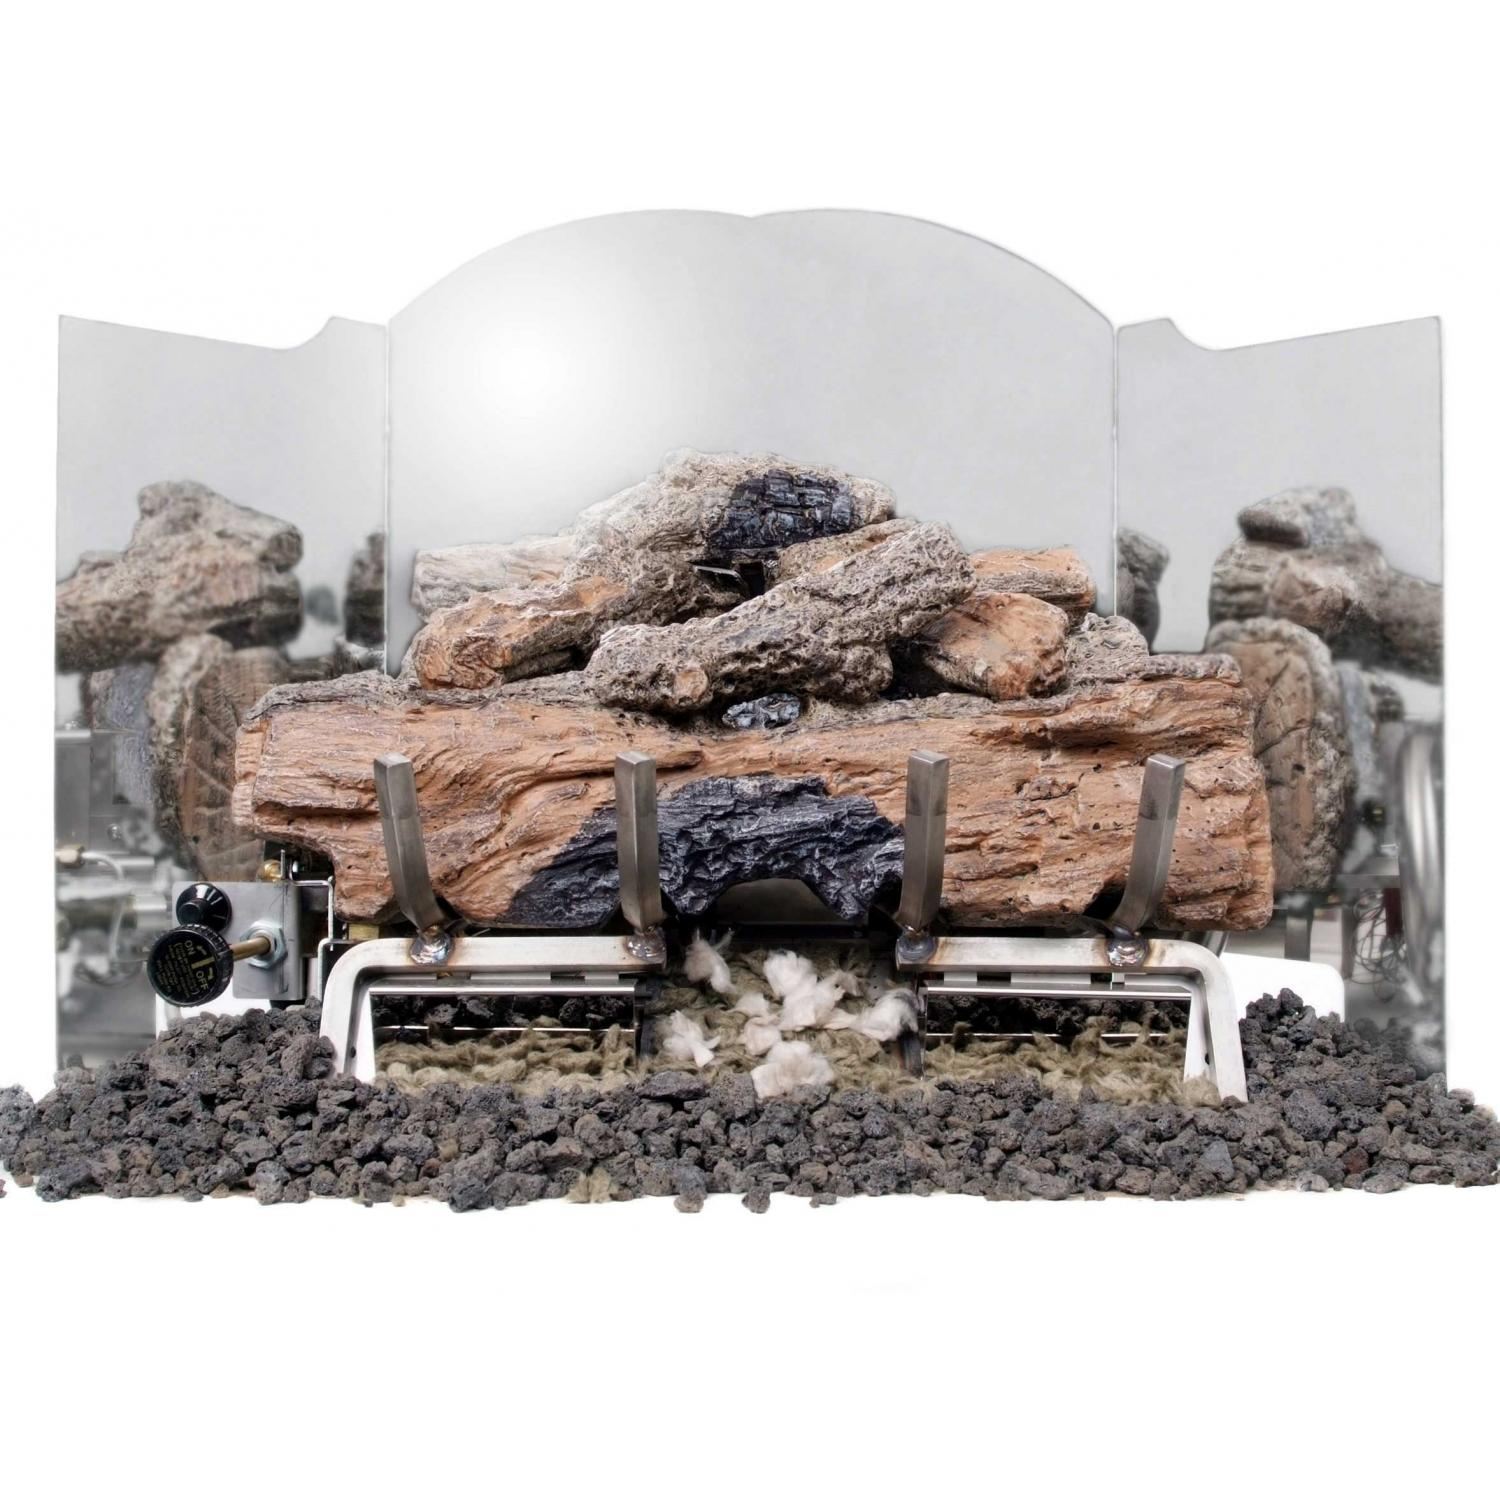 Peterson Gas Logs 18 Inch 3-Fold Traditional Polished Stainless Steel Fireback